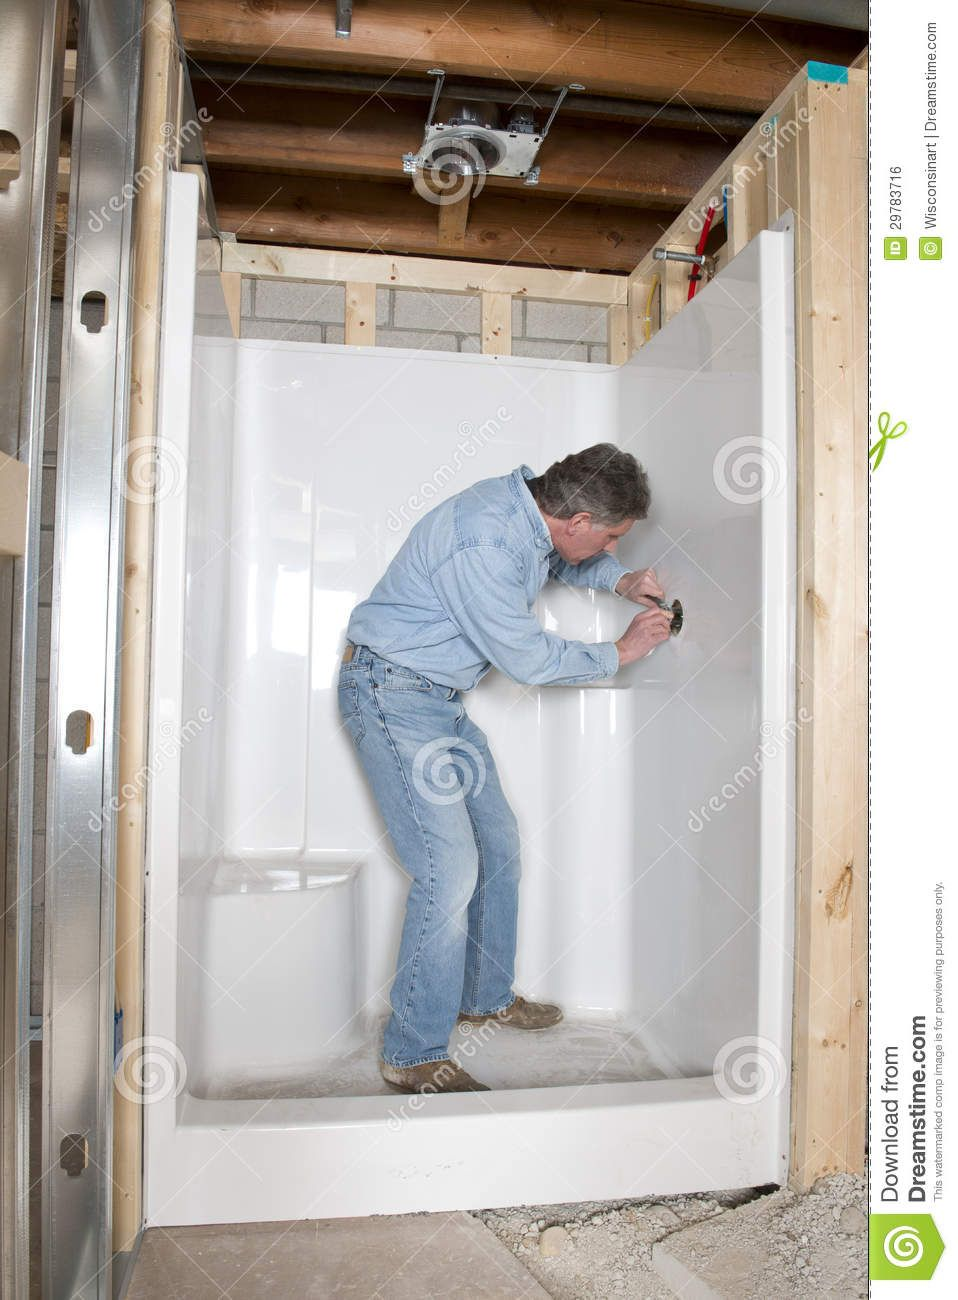 Installing A Shower Stall Google Search Stopmakingexcuses